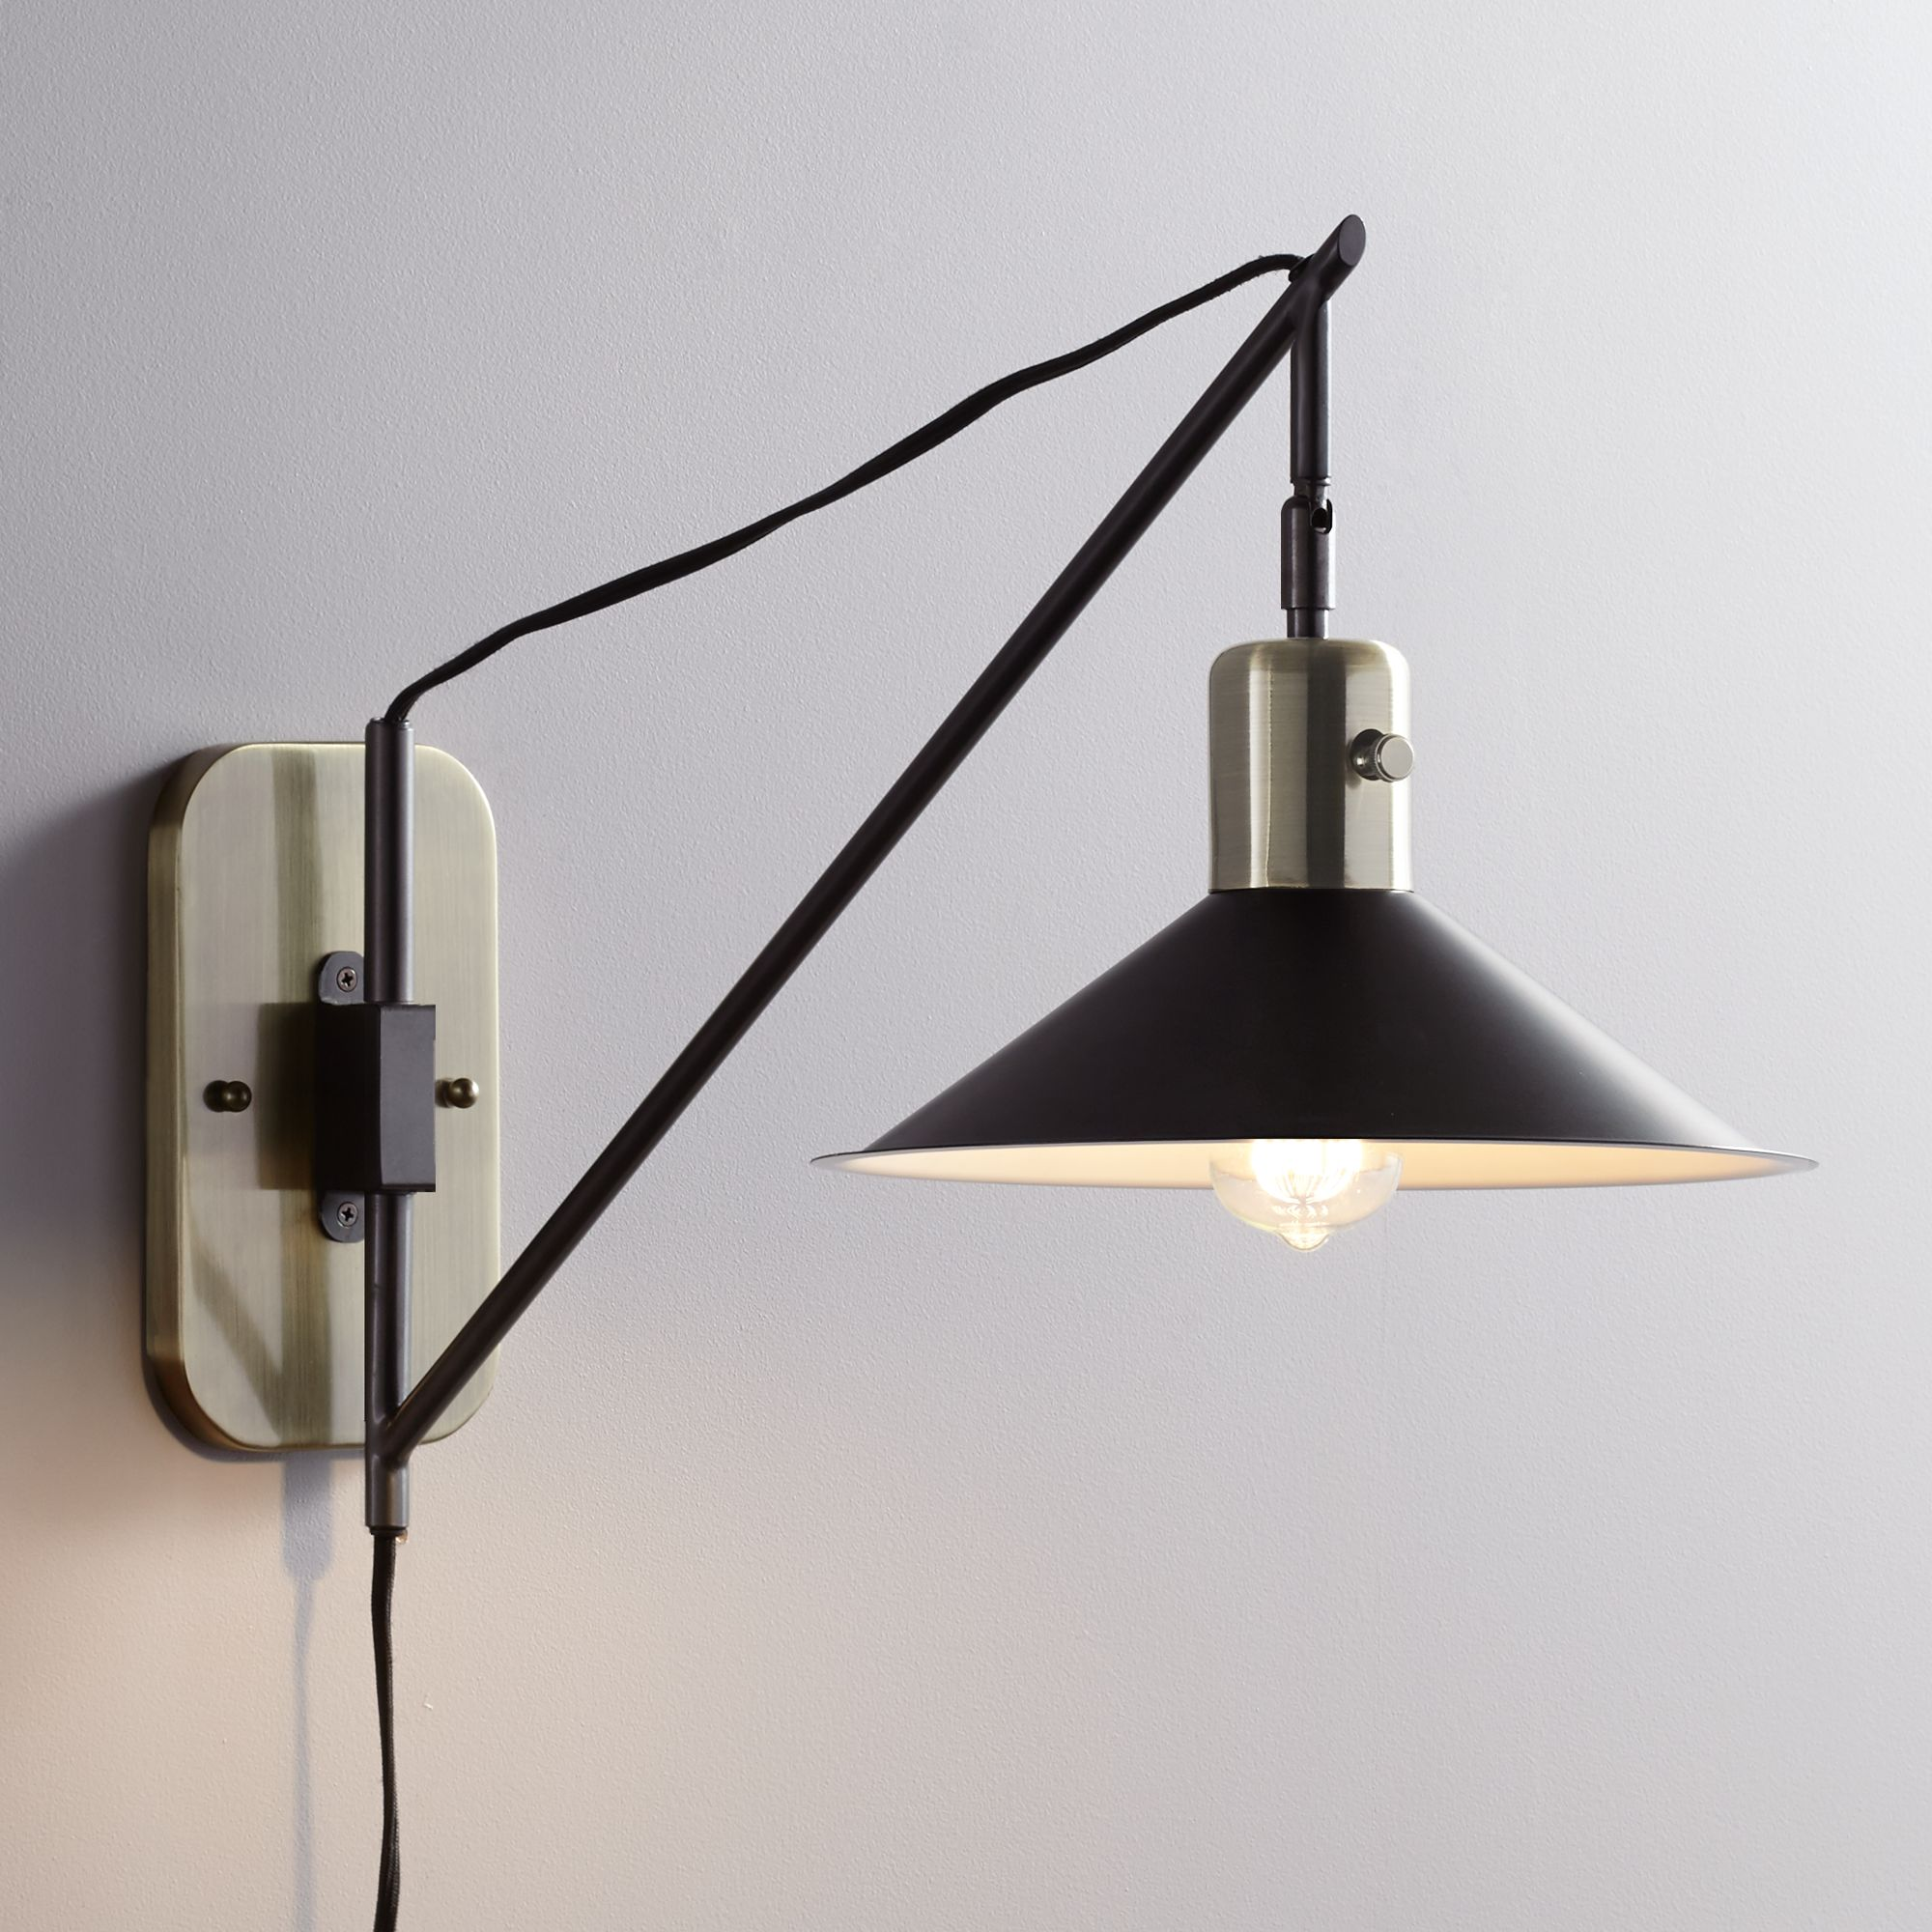 Swing Wall Lamp Swing Arm Wall Sconce Home Decor